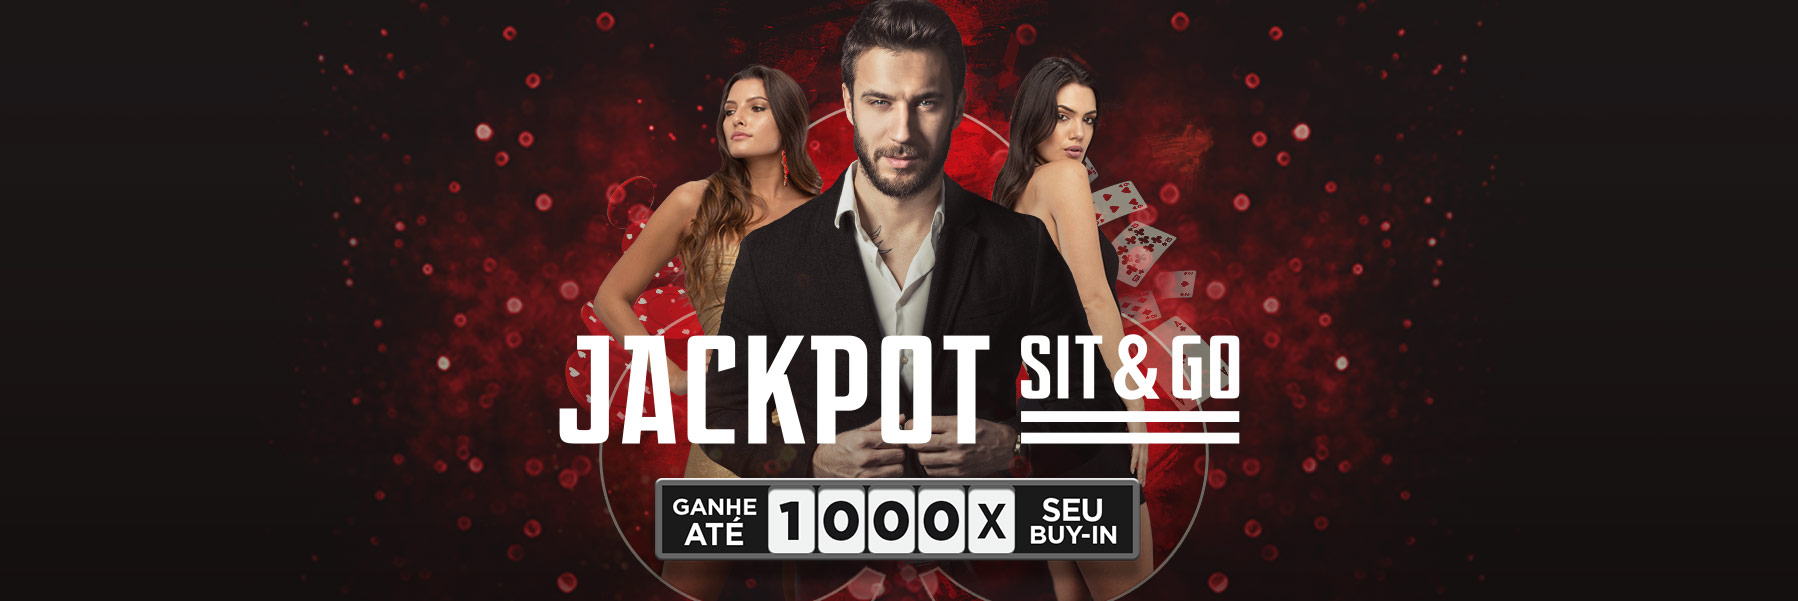 Jackpot Sin and Go